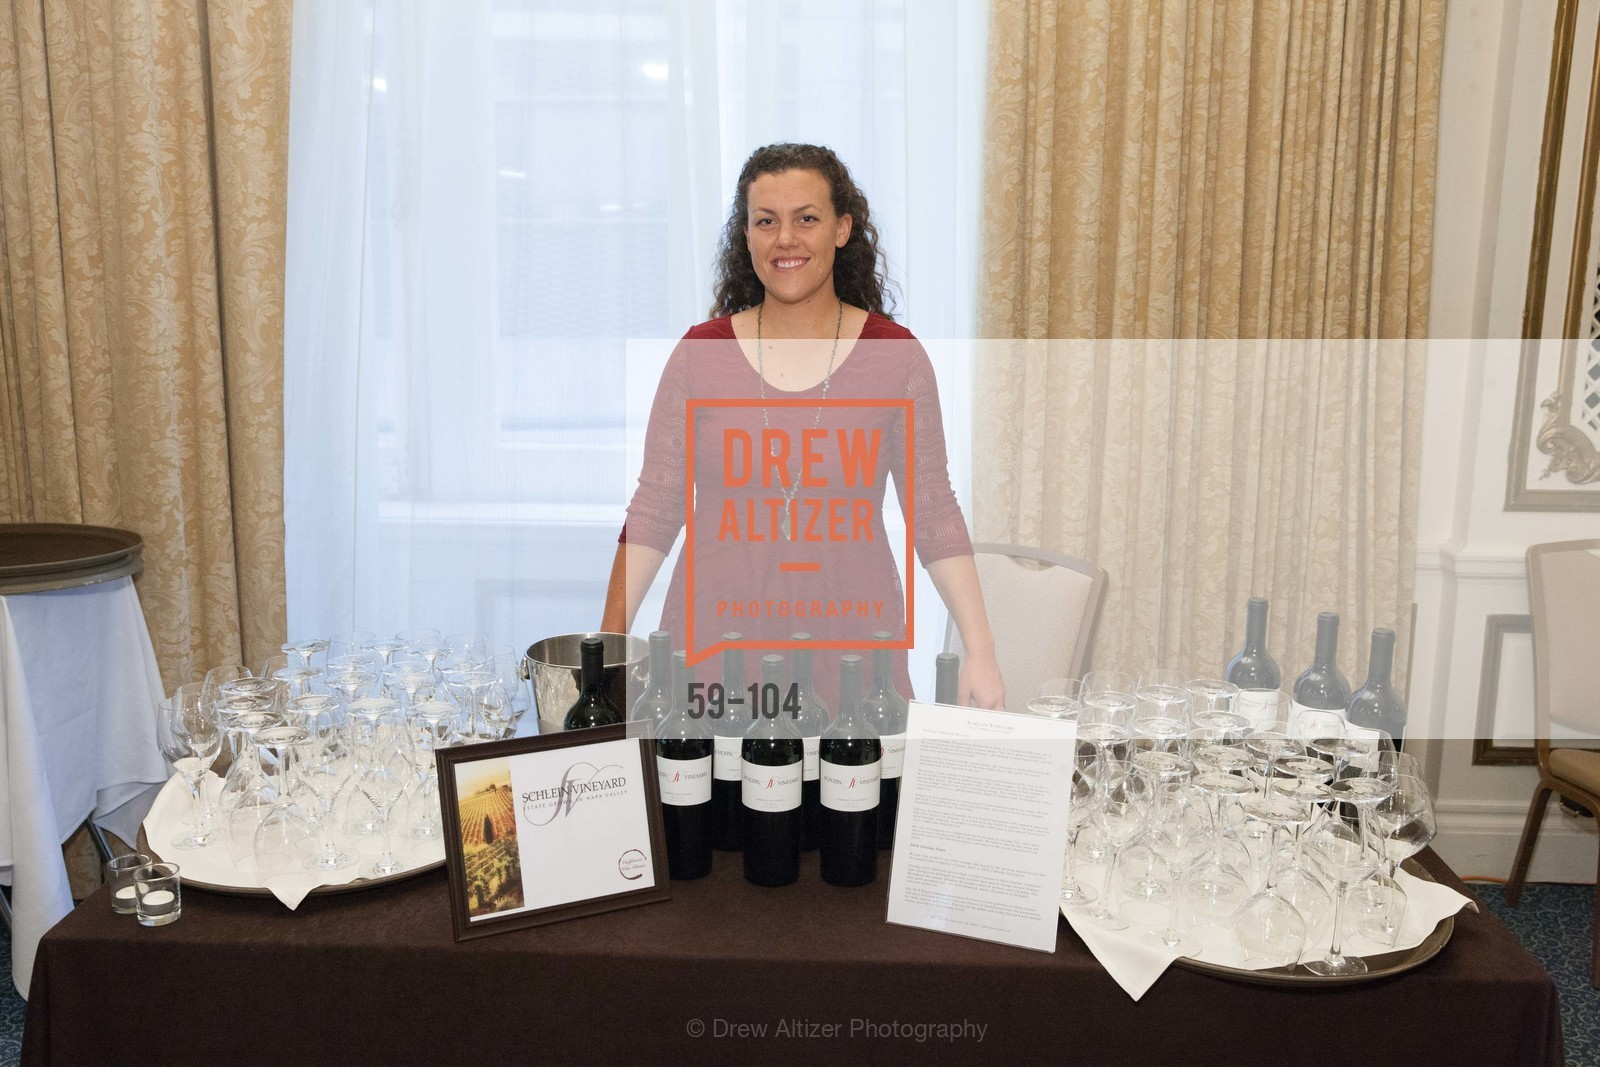 Extras, 8th Annual California Wine Classic, May 14th, 2015, Photo,Drew Altizer, Drew Altizer Photography, full-service agency, private events, San Francisco photographer, photographer california